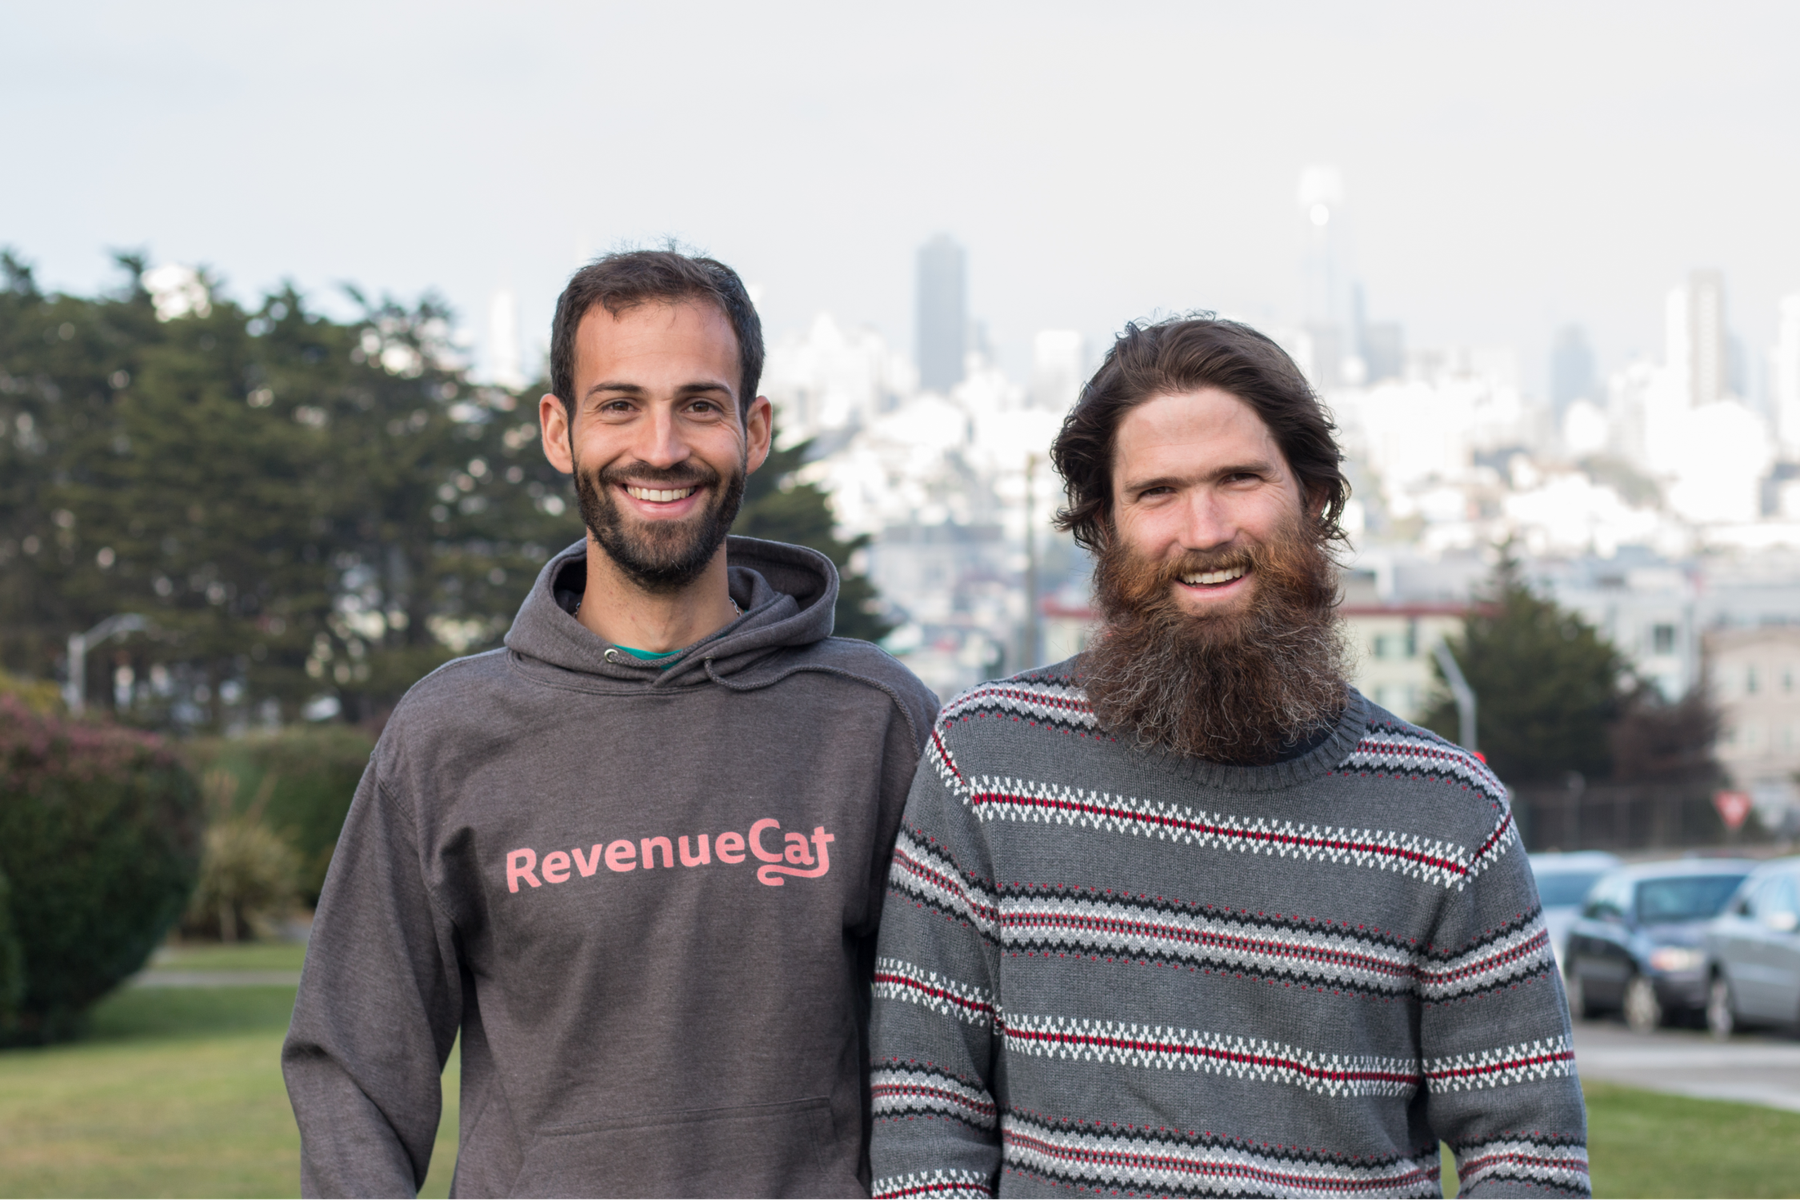 The Co-founders of RevenueCat: Miguel Carranza (left) and Jacob Eiting (right)